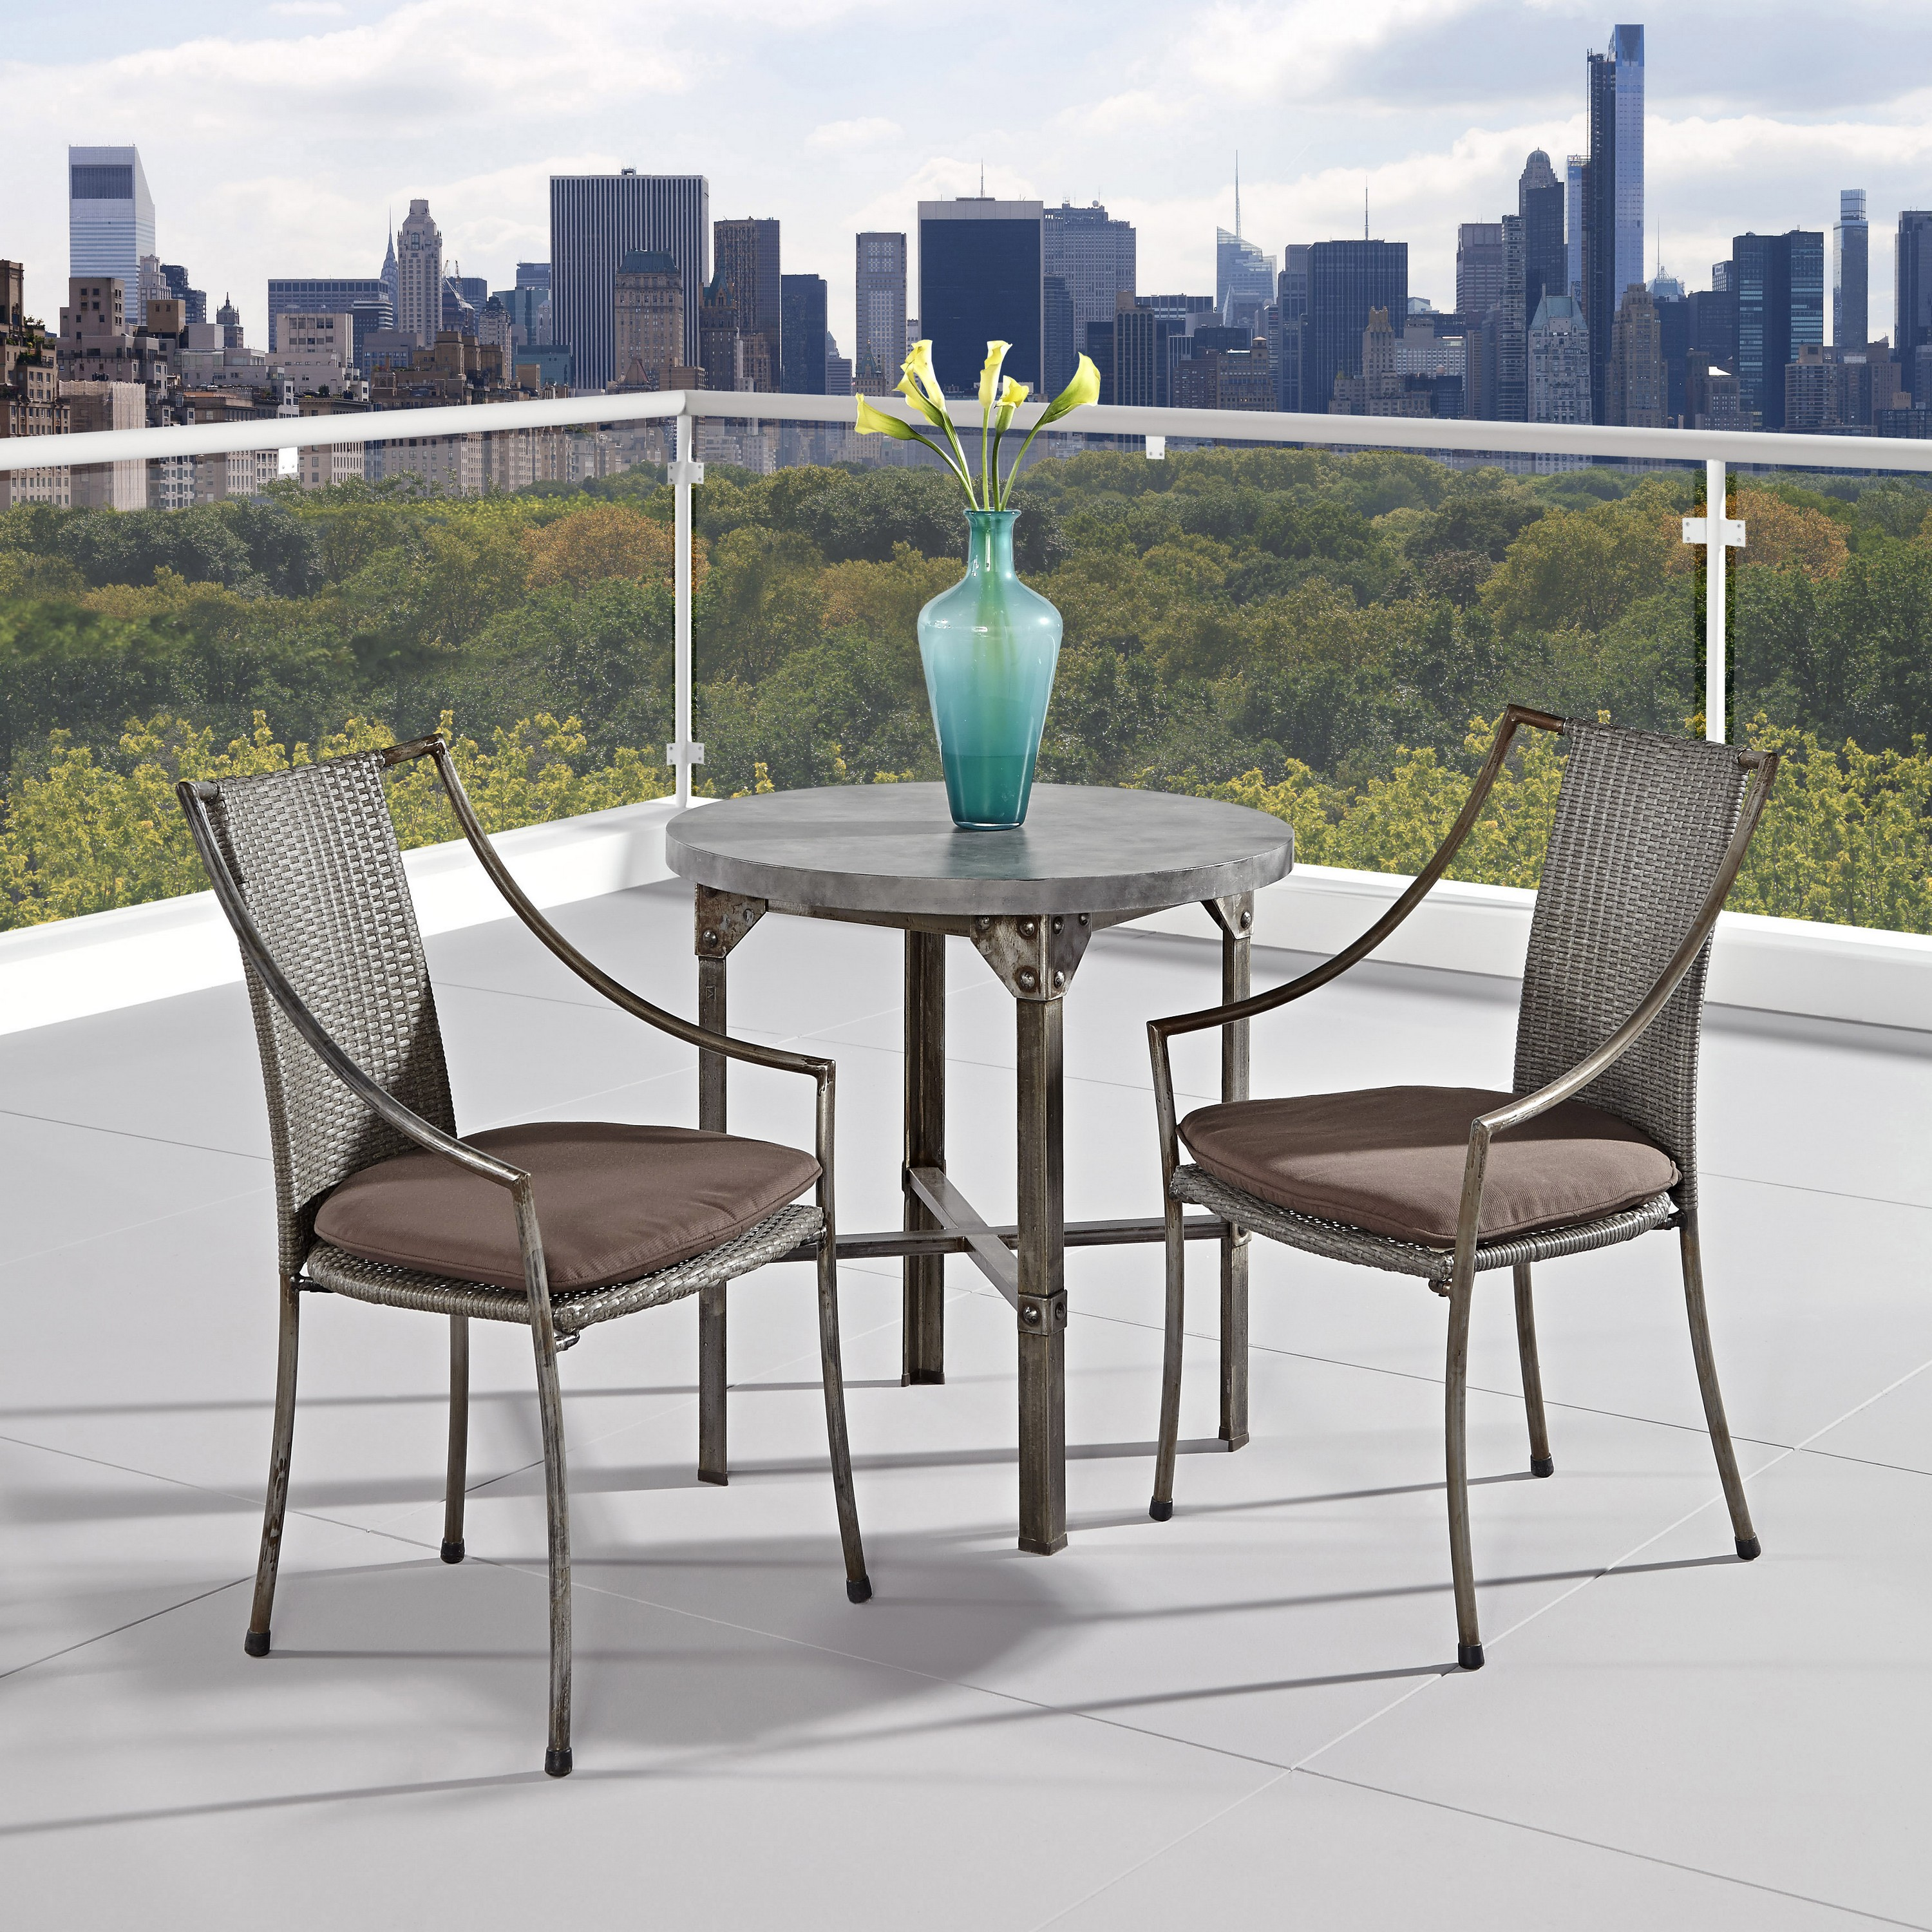 Home Styles Urban Outdoor 3pc Dining Set - Living